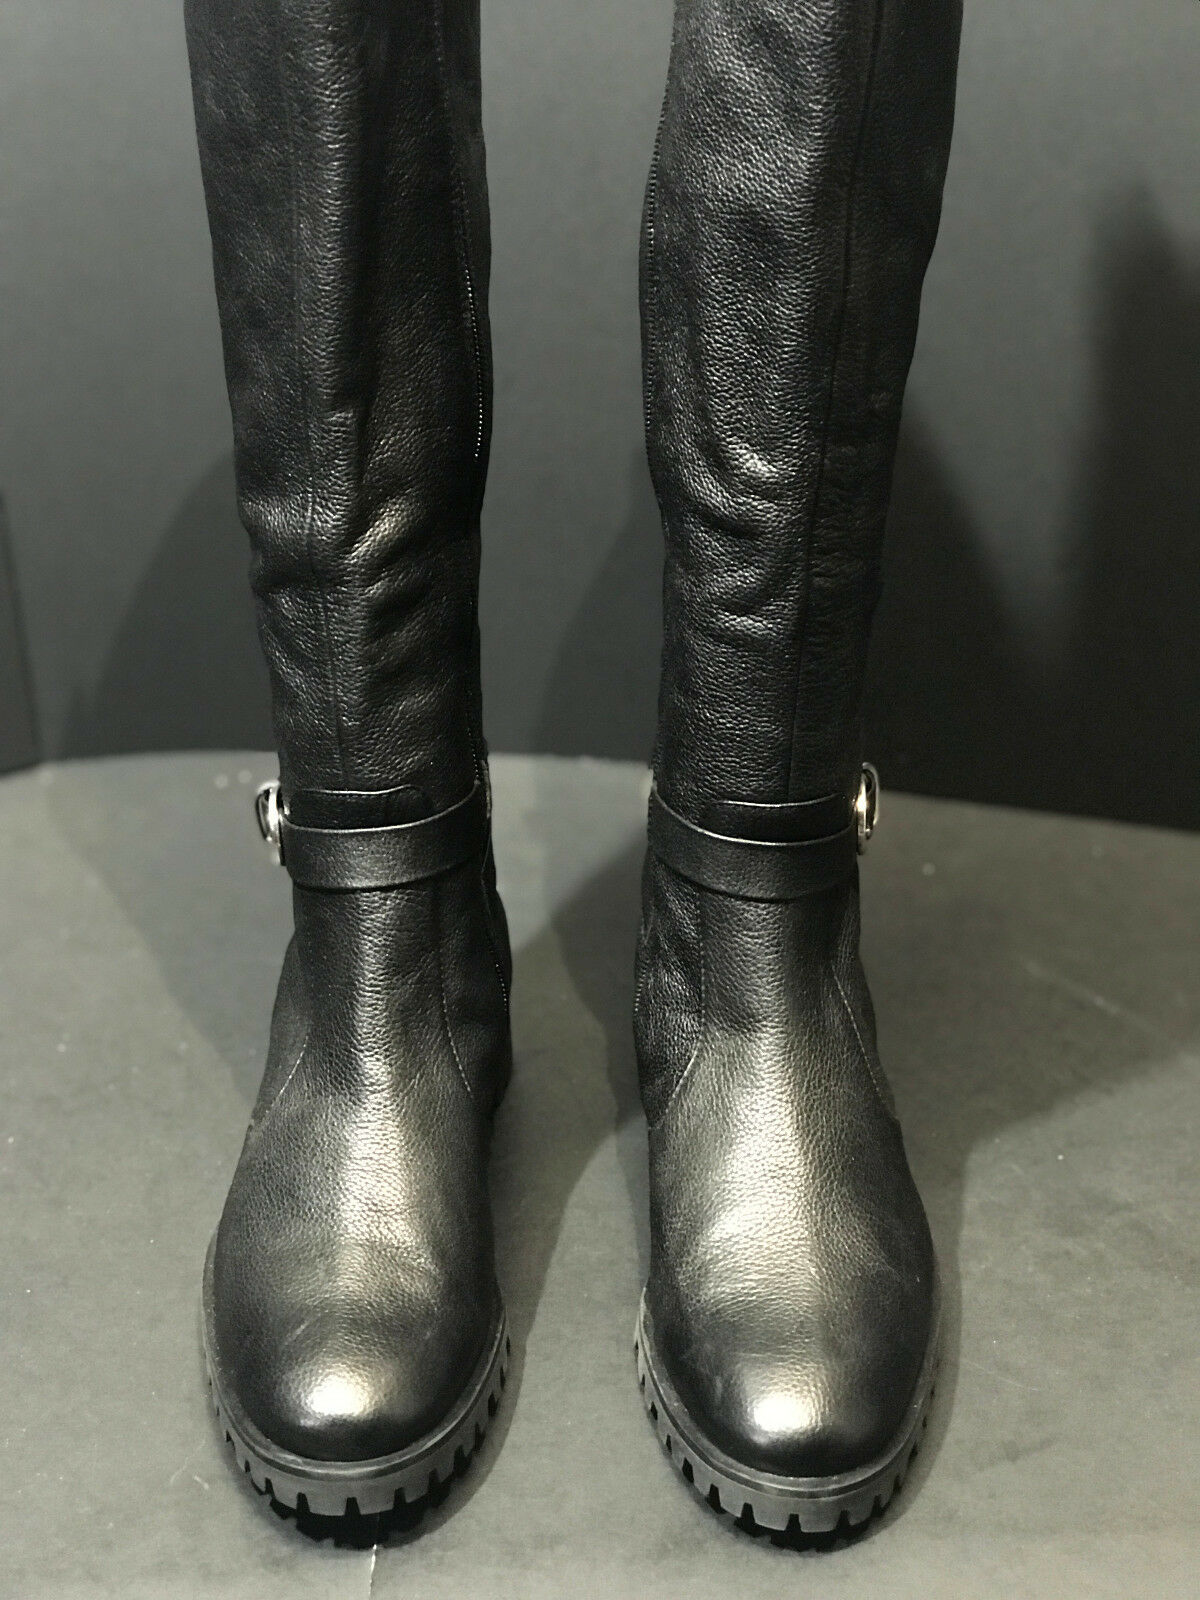 NEW Tesori Valencia Women's Leather Riding Boots Size US US US 6.5M New cf496a